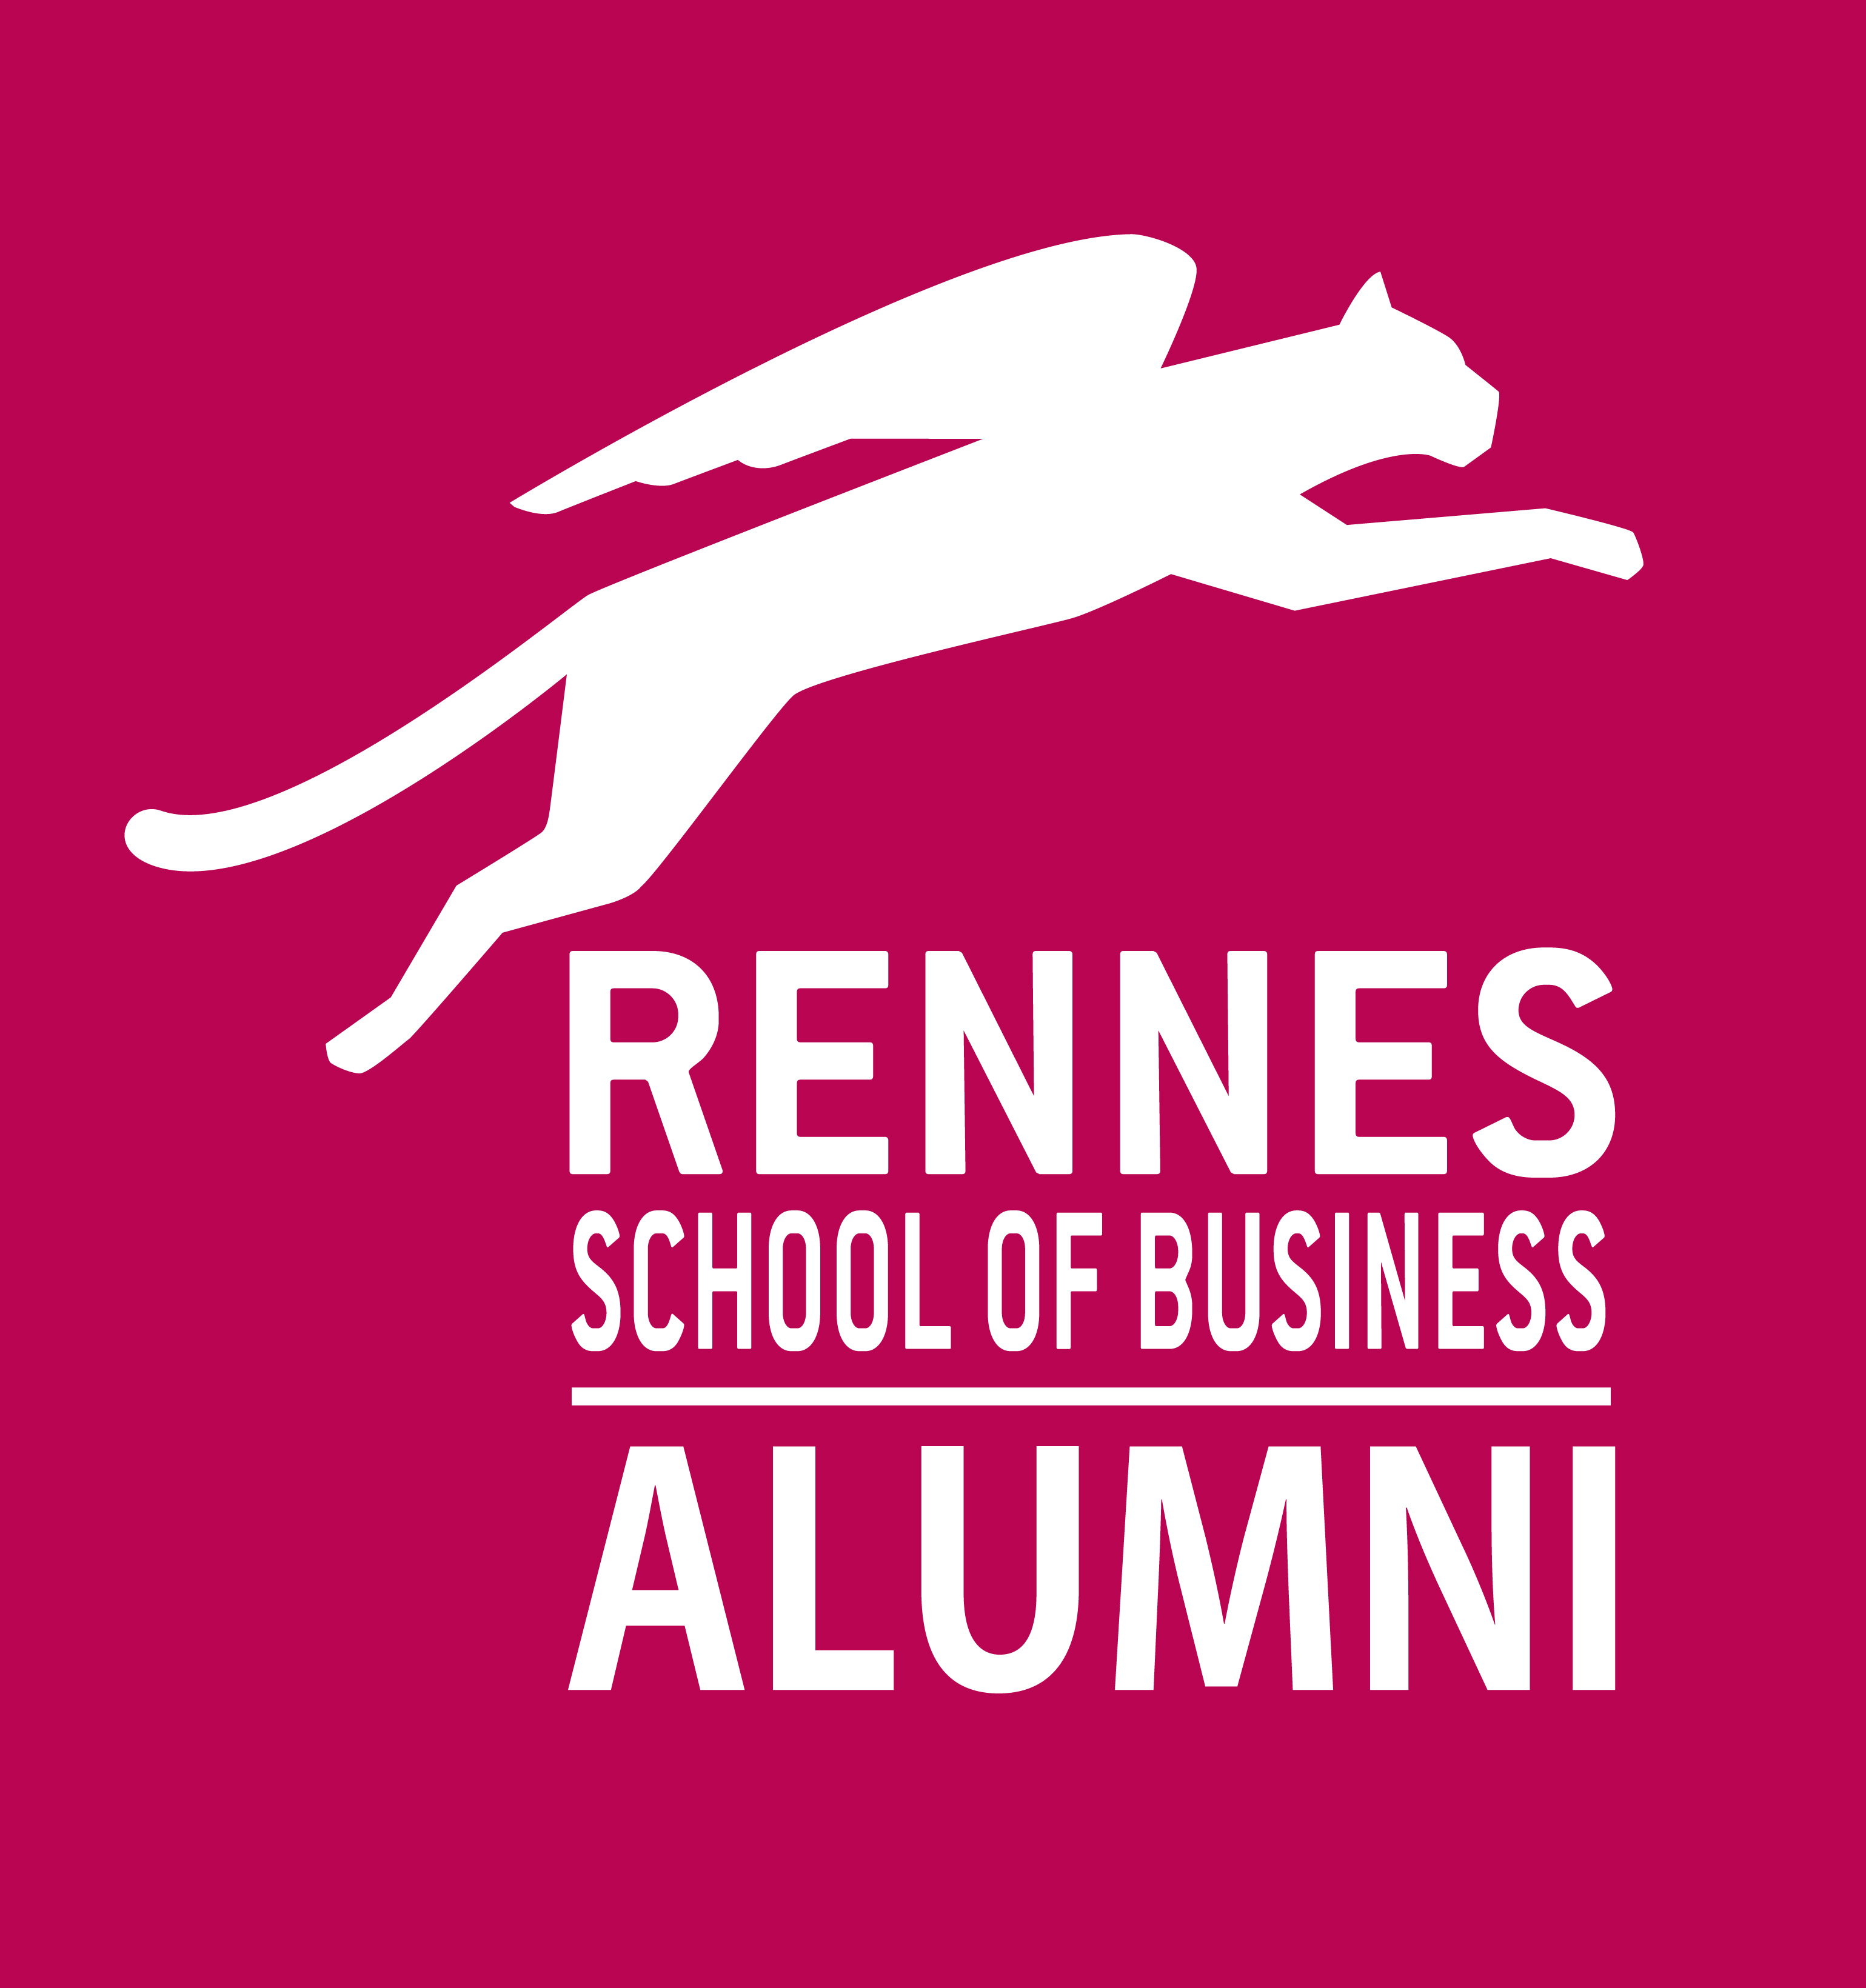 Rennes School of Business Alumni